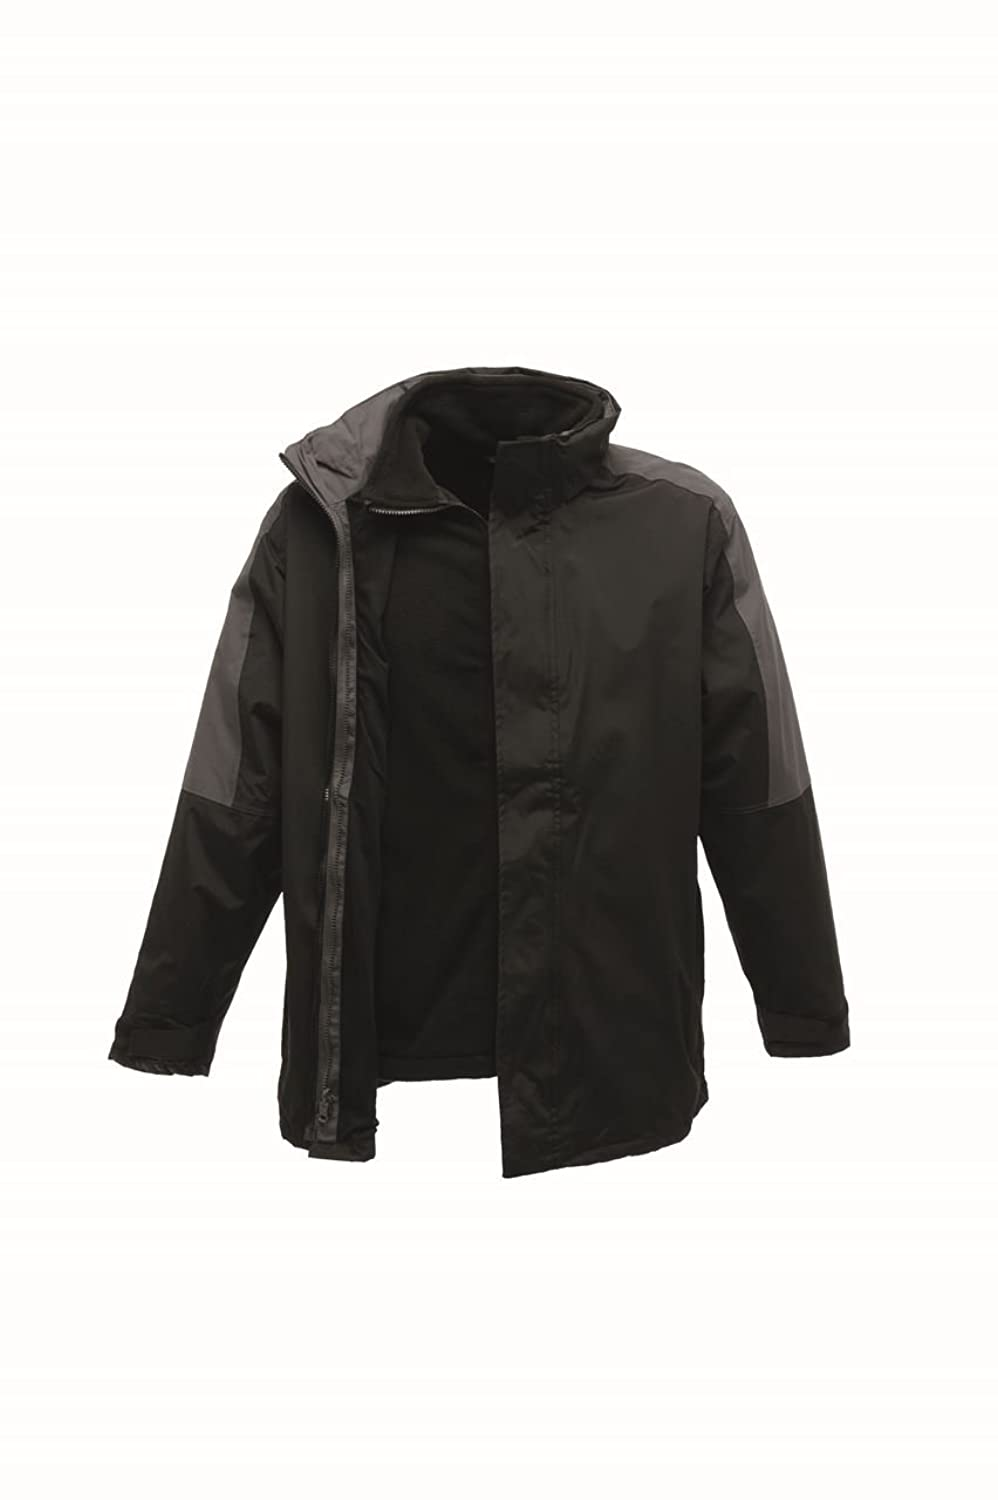 Regatta Defender III 3 in 1 Jacket Black/Seal Grey XL